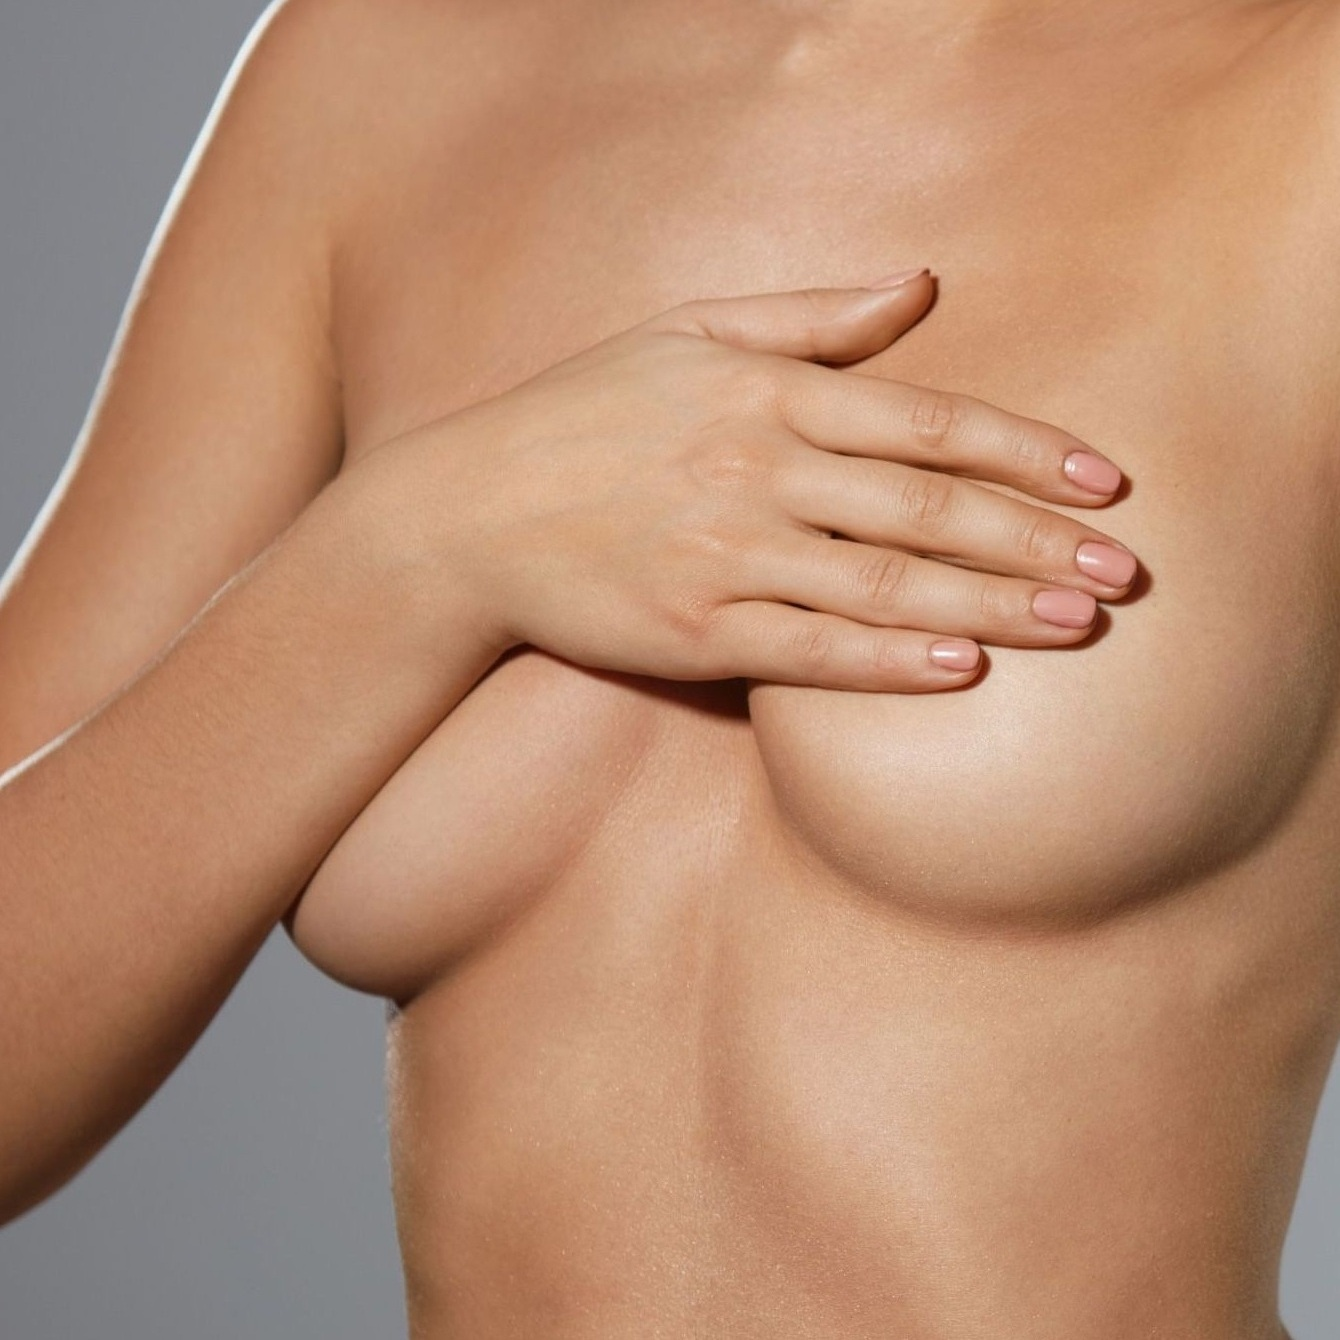 vegan boob job - This procedure involves taking fat from one part of the body and grafting it into the breasts for natural, implant-free breast enhancement.